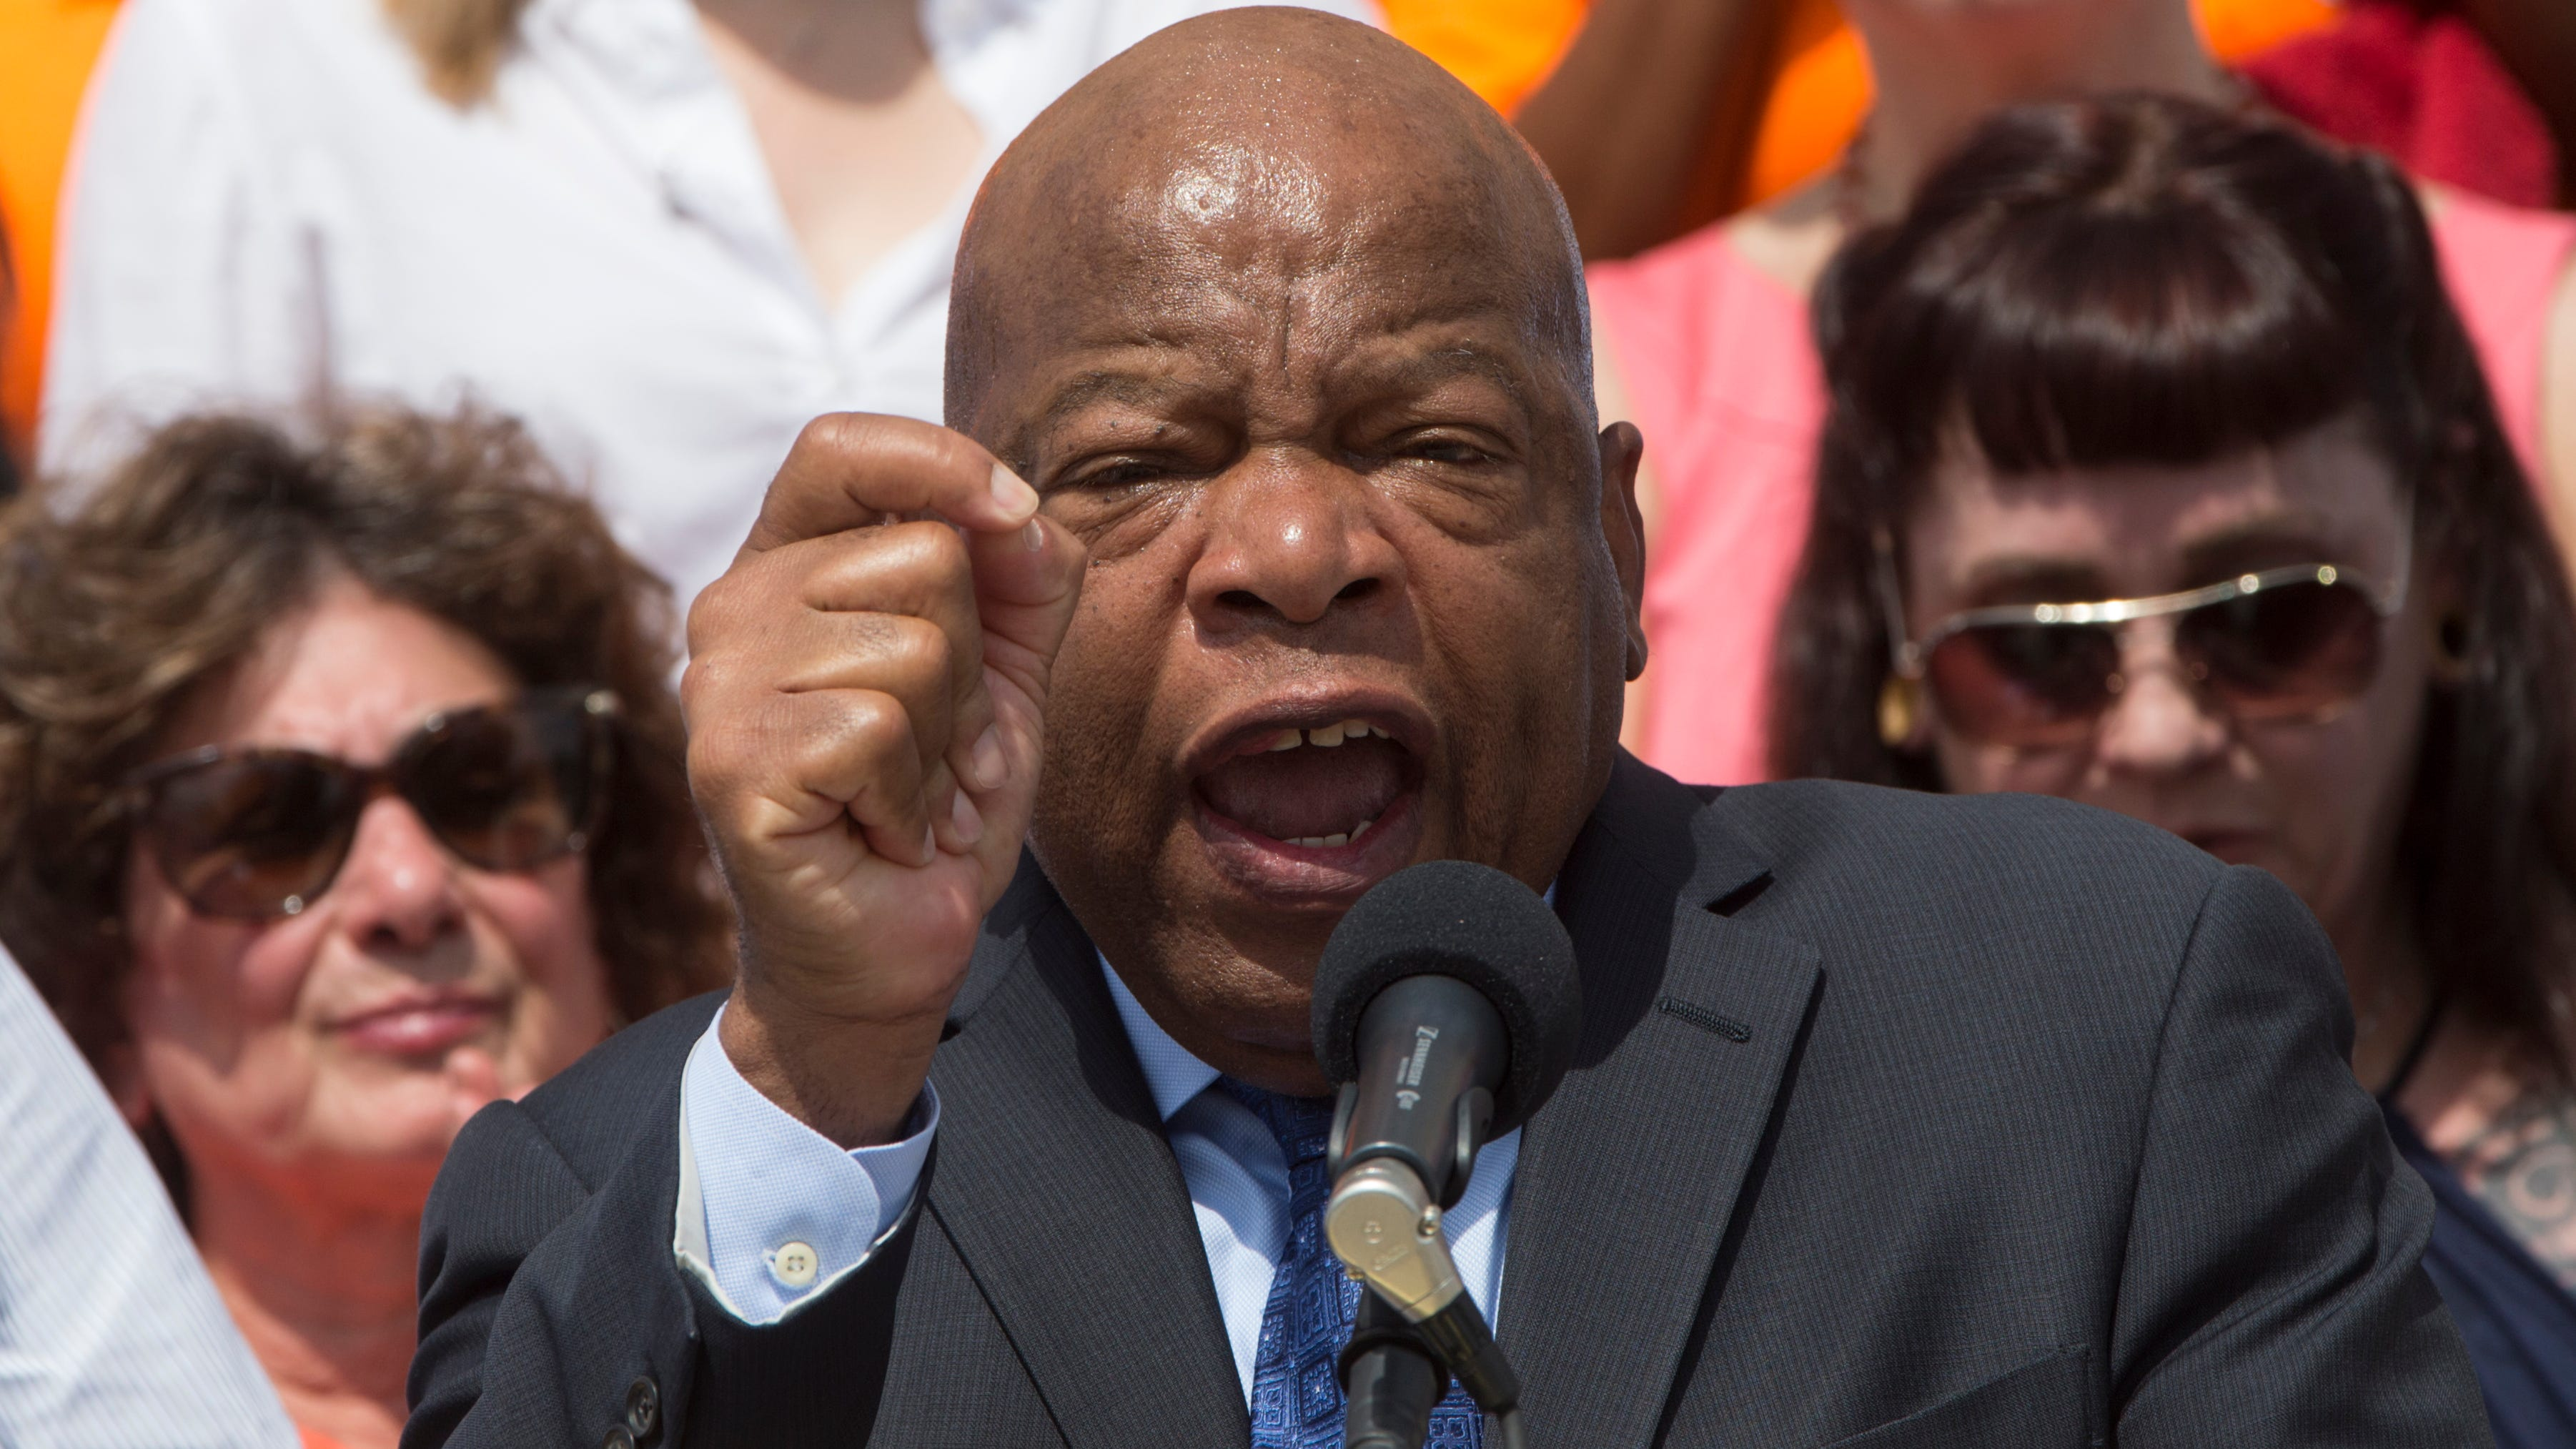 Rep. John Lewis, D-Ga., speaks at an anti-gun violence rally on the Capitol steps in Washington, July 6, 2016, calling on House Speaker Paul Ryan to allow votes on gun violence prevention legislation.